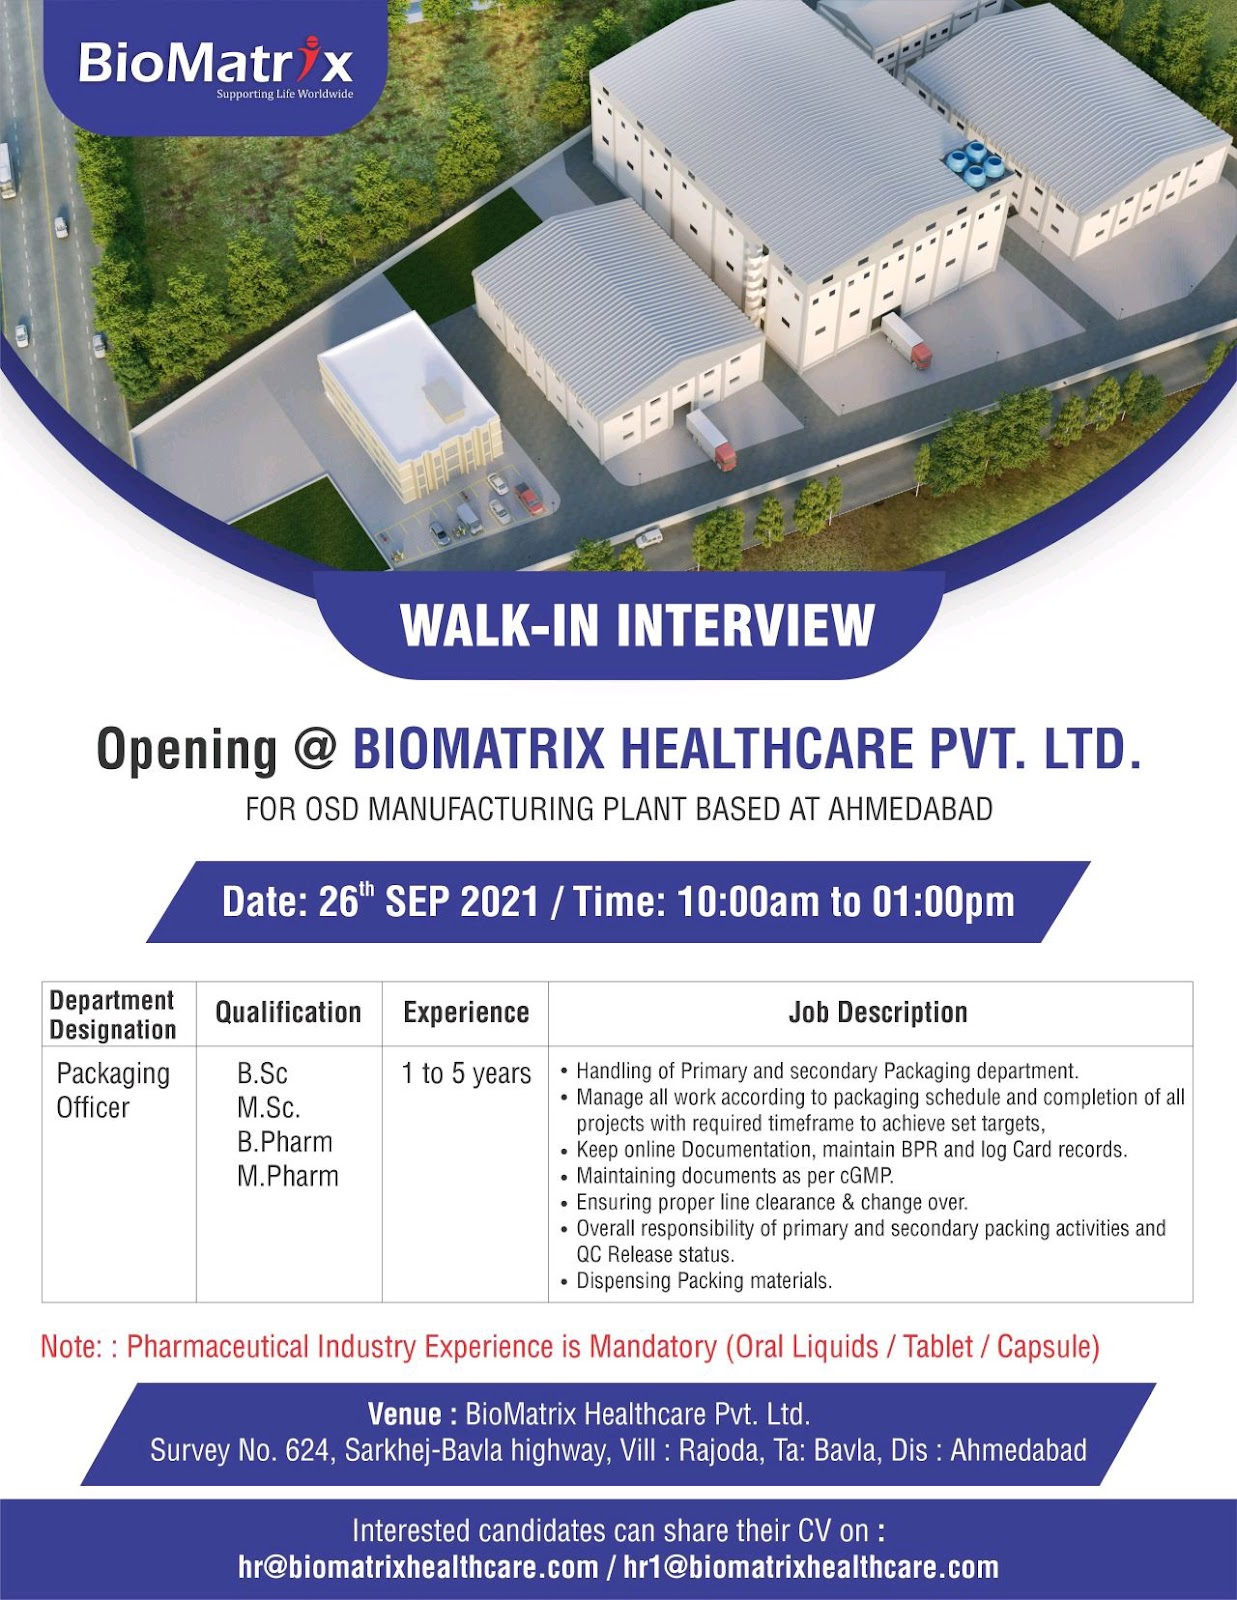 Walk-in For Packaging Officer At Biomatrix Health Care Ltd